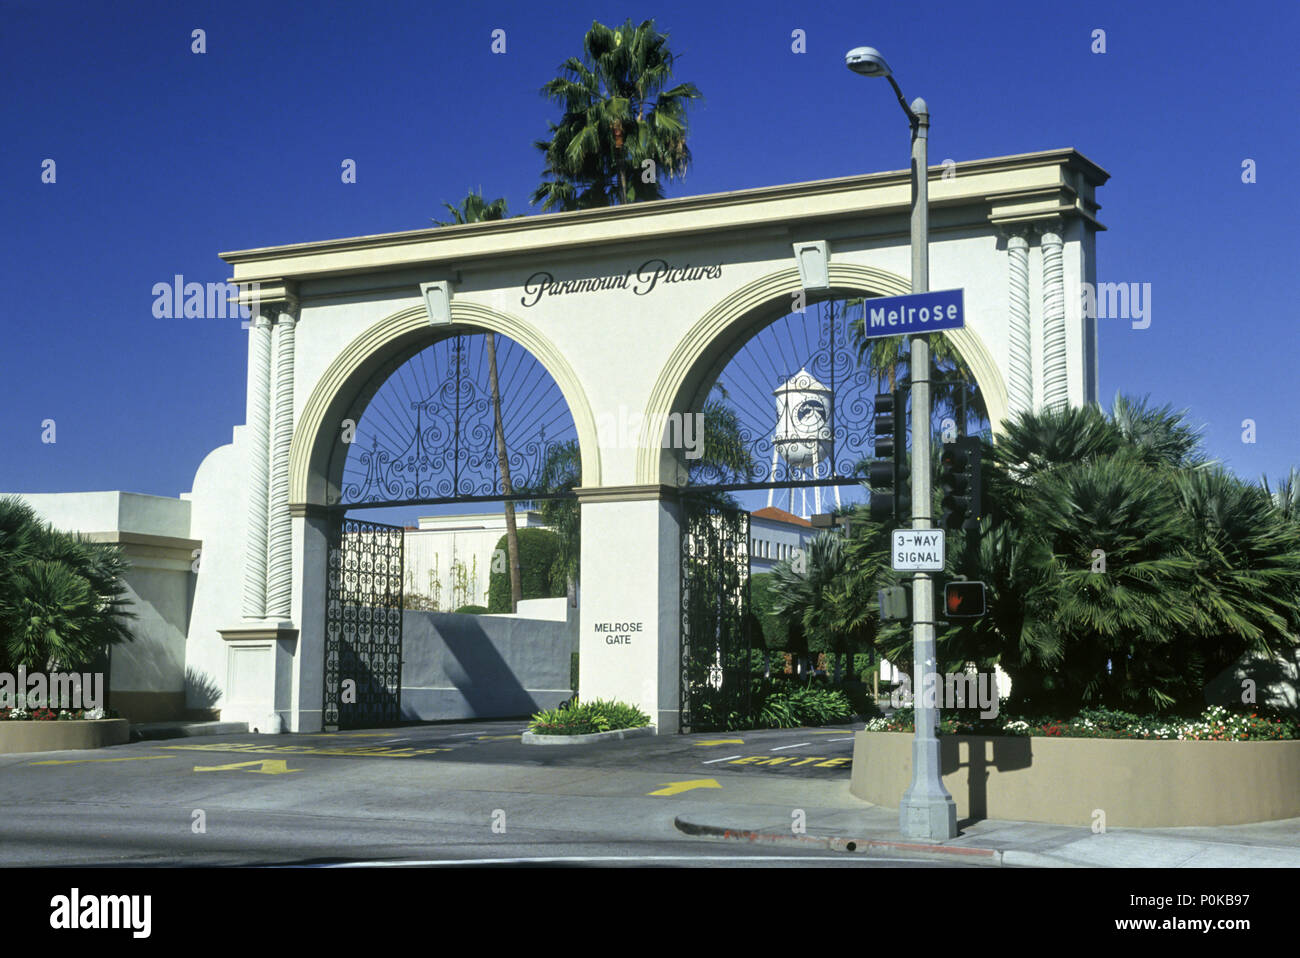 1995 HISTORICAL ENTRANCE GATE PARAMOUNT PICTURES MELROSE AVENUE HOLLYWOOD LOS ANGELES CALIFORNIA USA Stock Photo